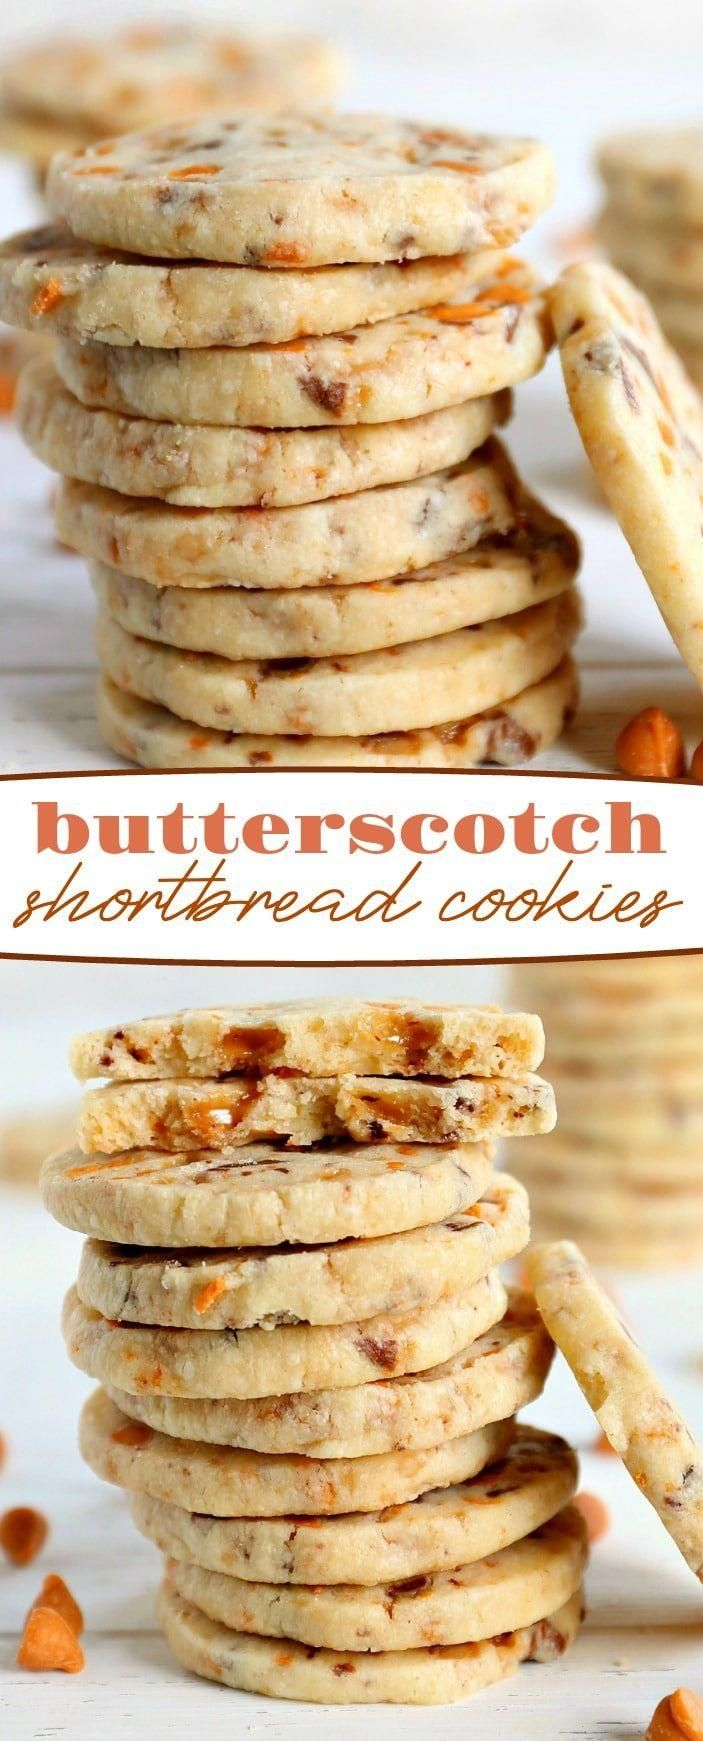 These melt in your mouth Butterscotch Shortbread Cookies are everything shortbre...  - Mom On Timeout Recipes -